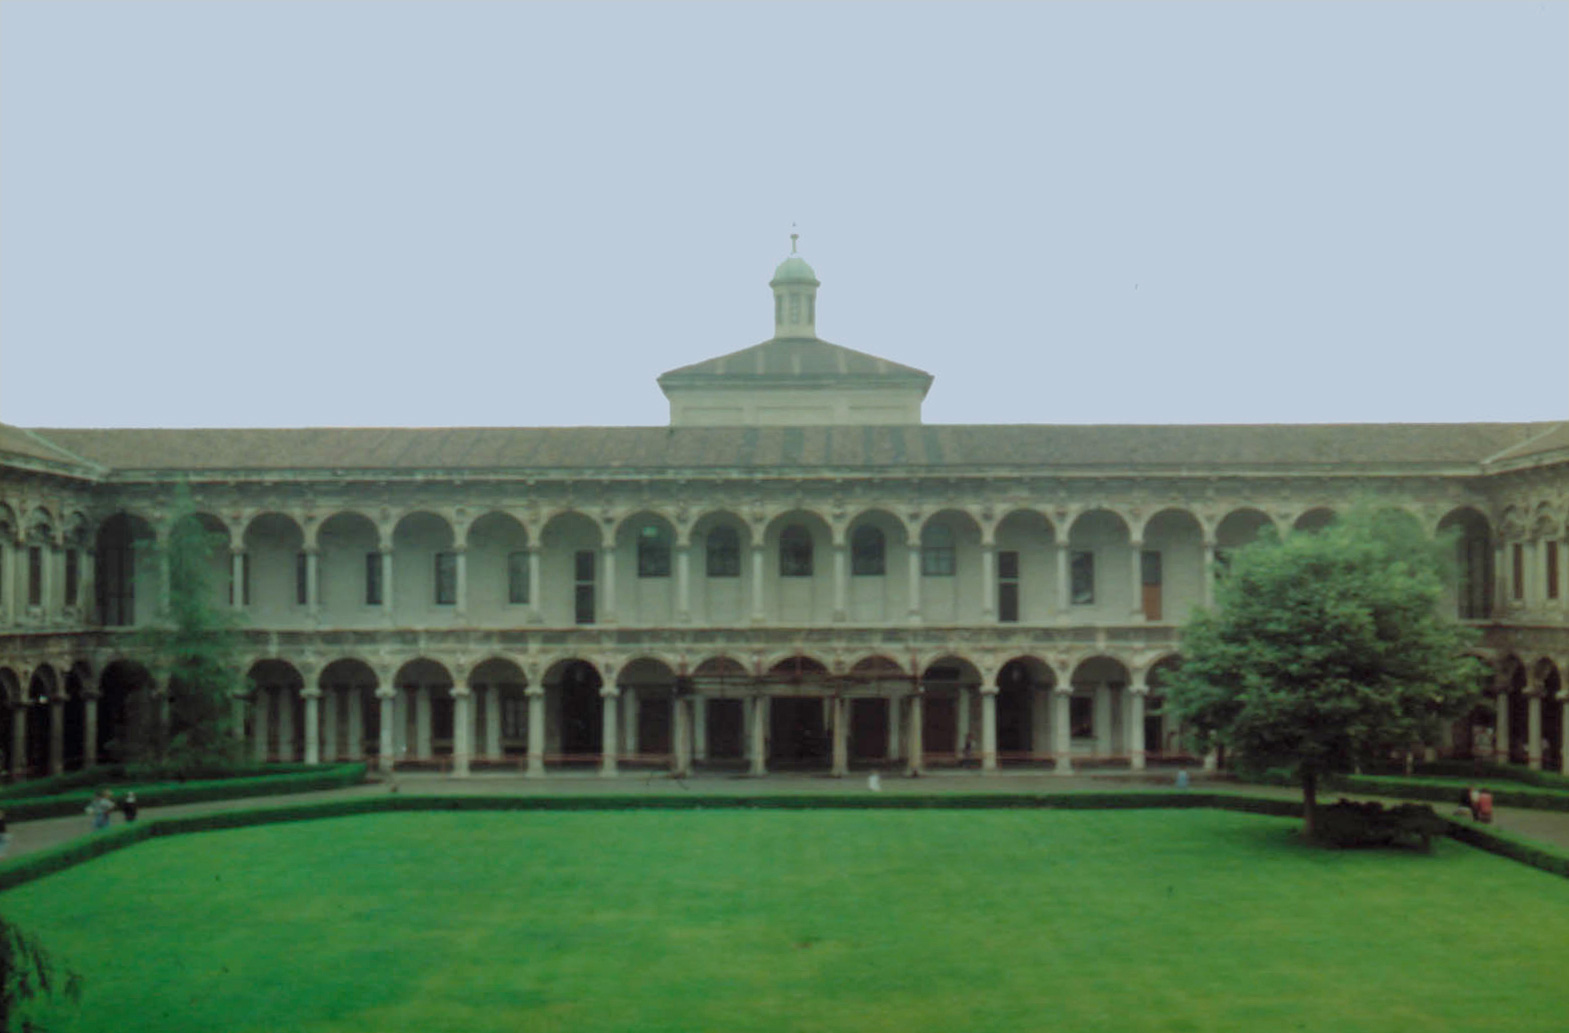 Ca granda universit degli studi di milano milano nei for Universita milano